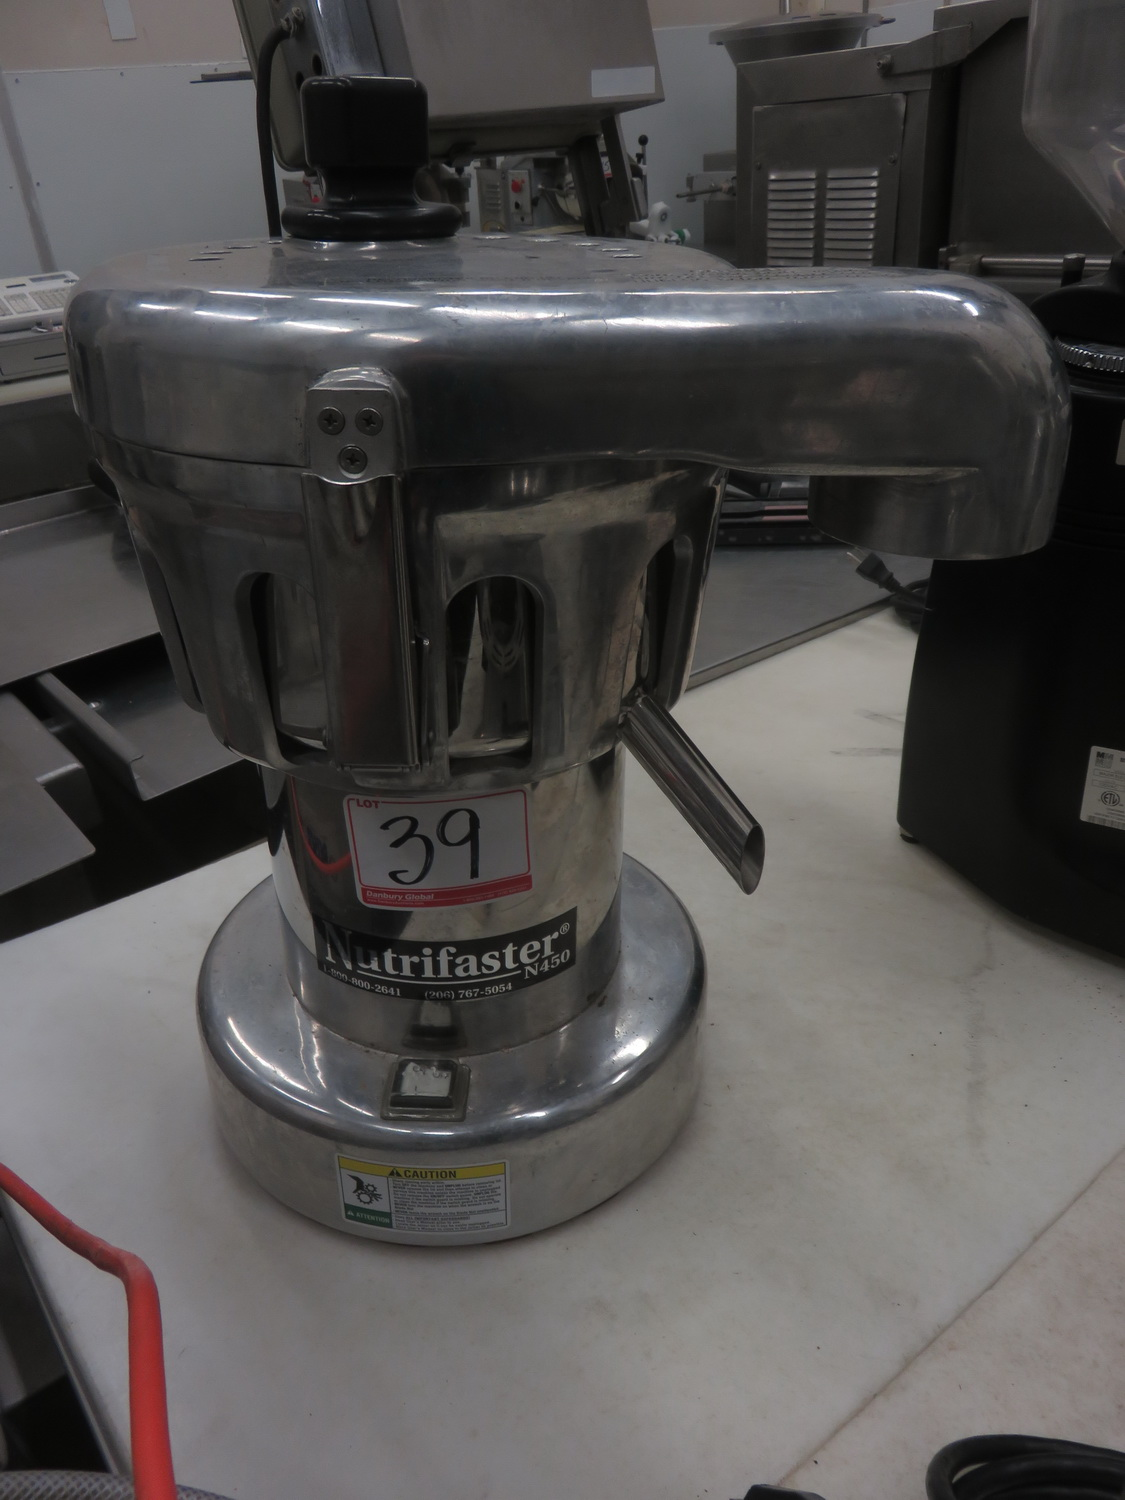 NUTRIFASTER N450 TABLE TOP JUICER - Image 2 of 2